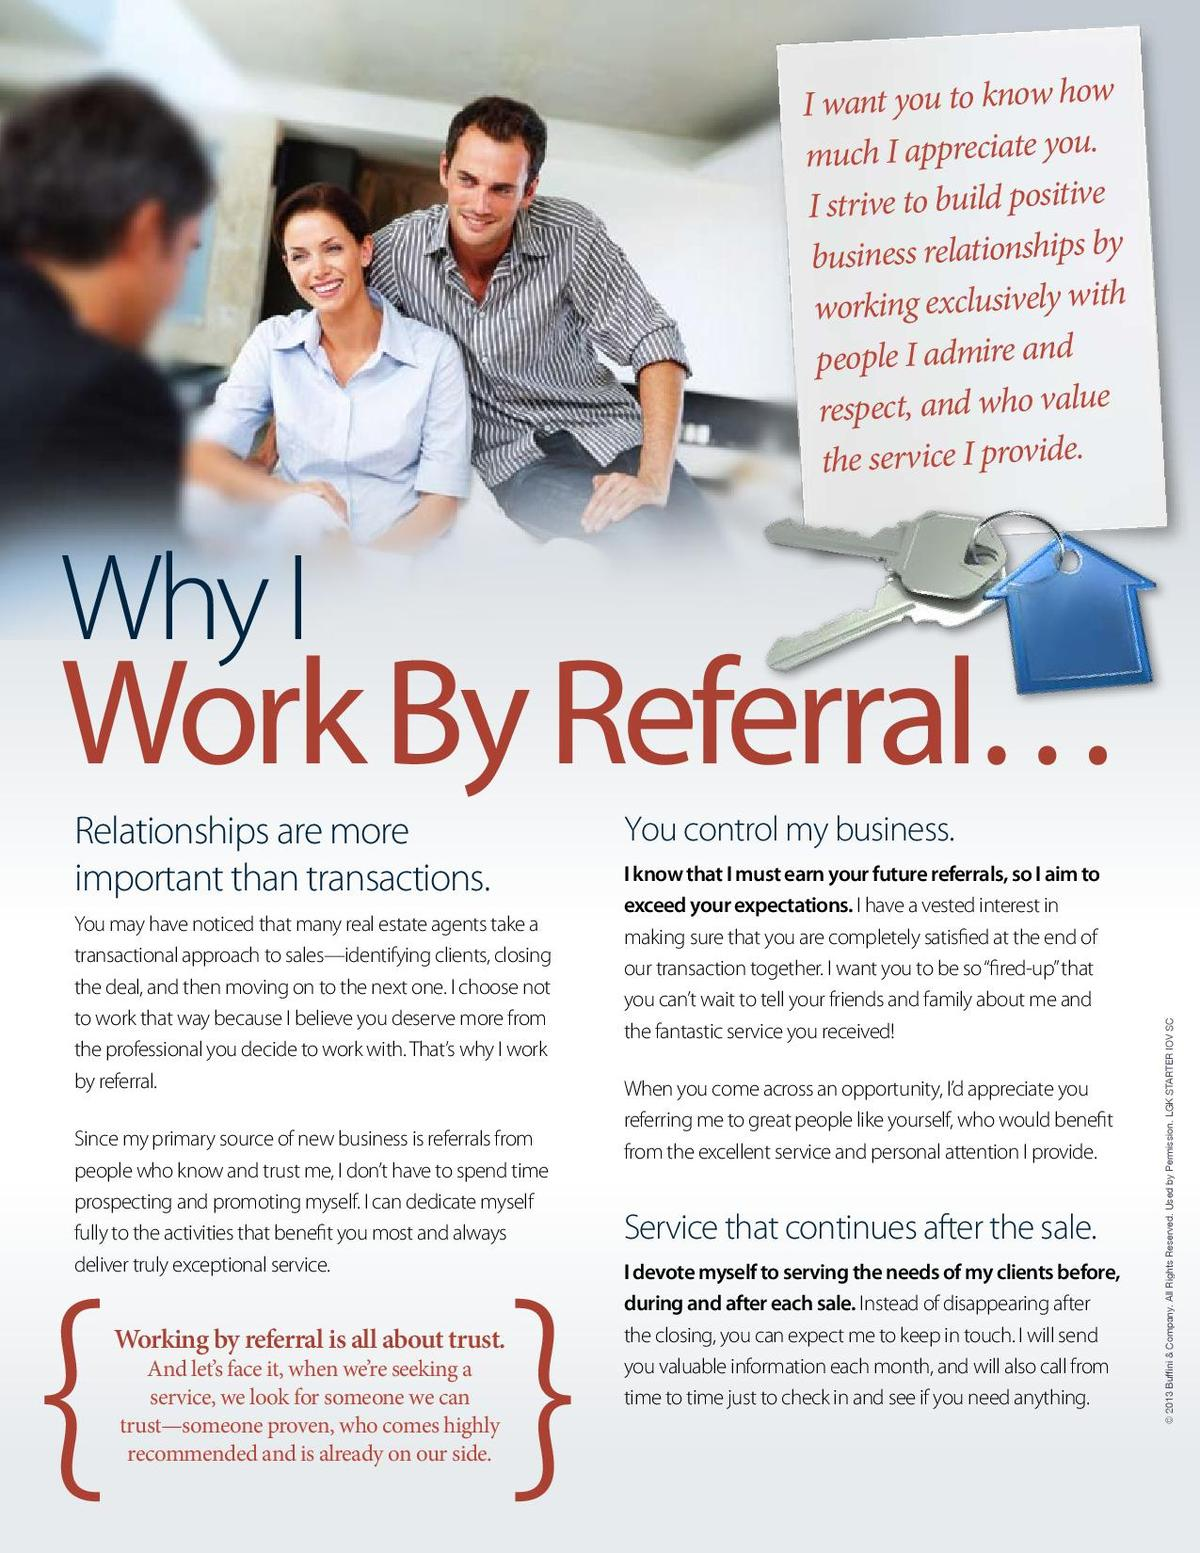 Working By Referral